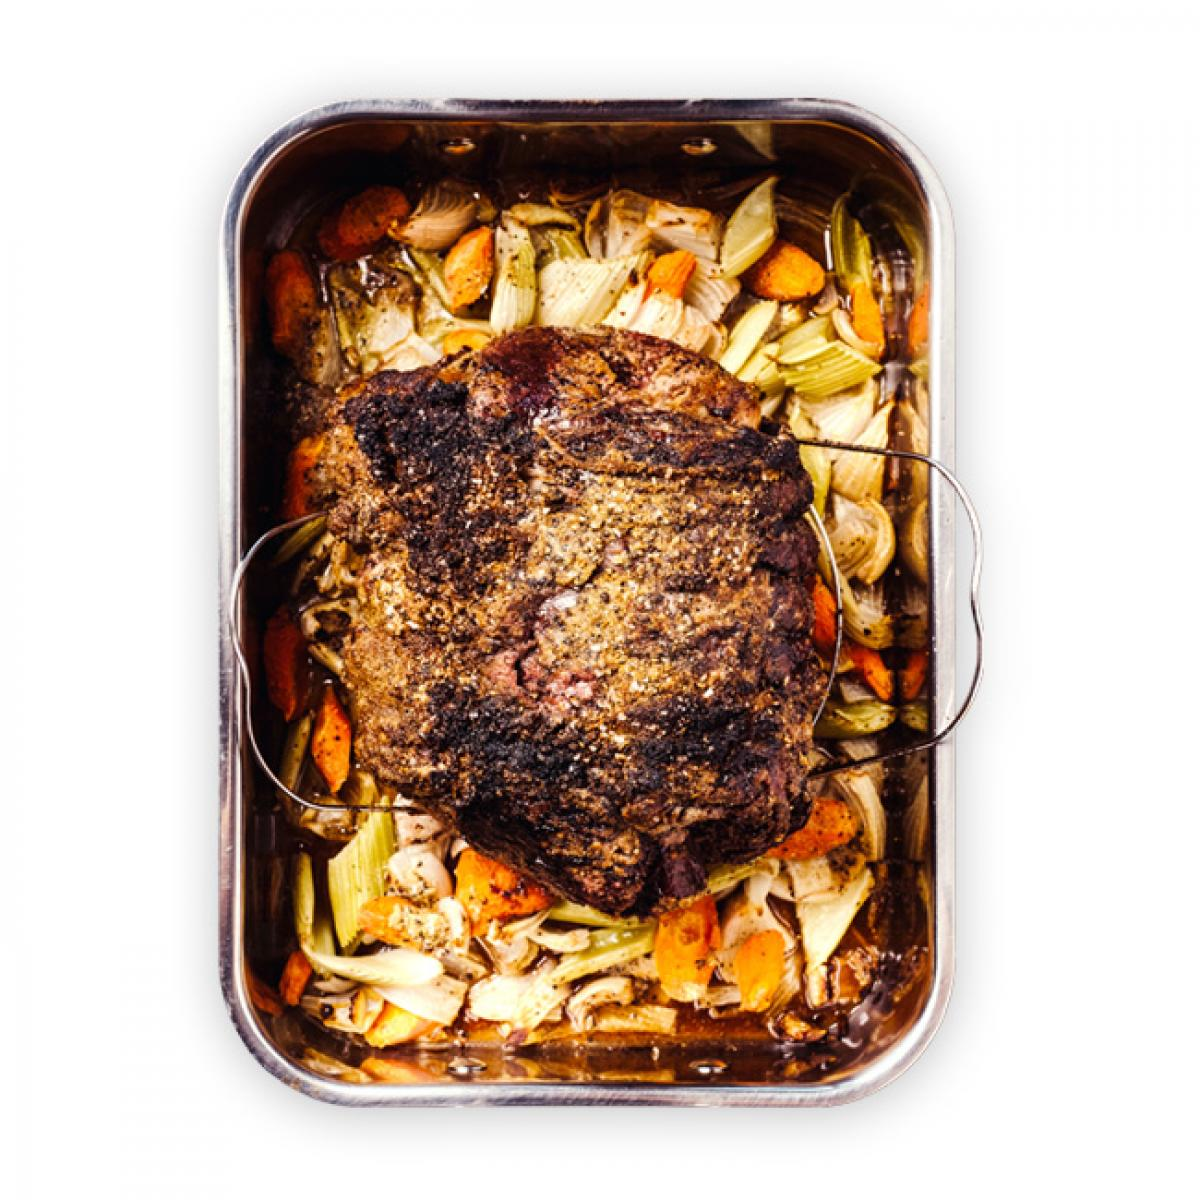 Prime Rib Roast with Spiced Crust plate image